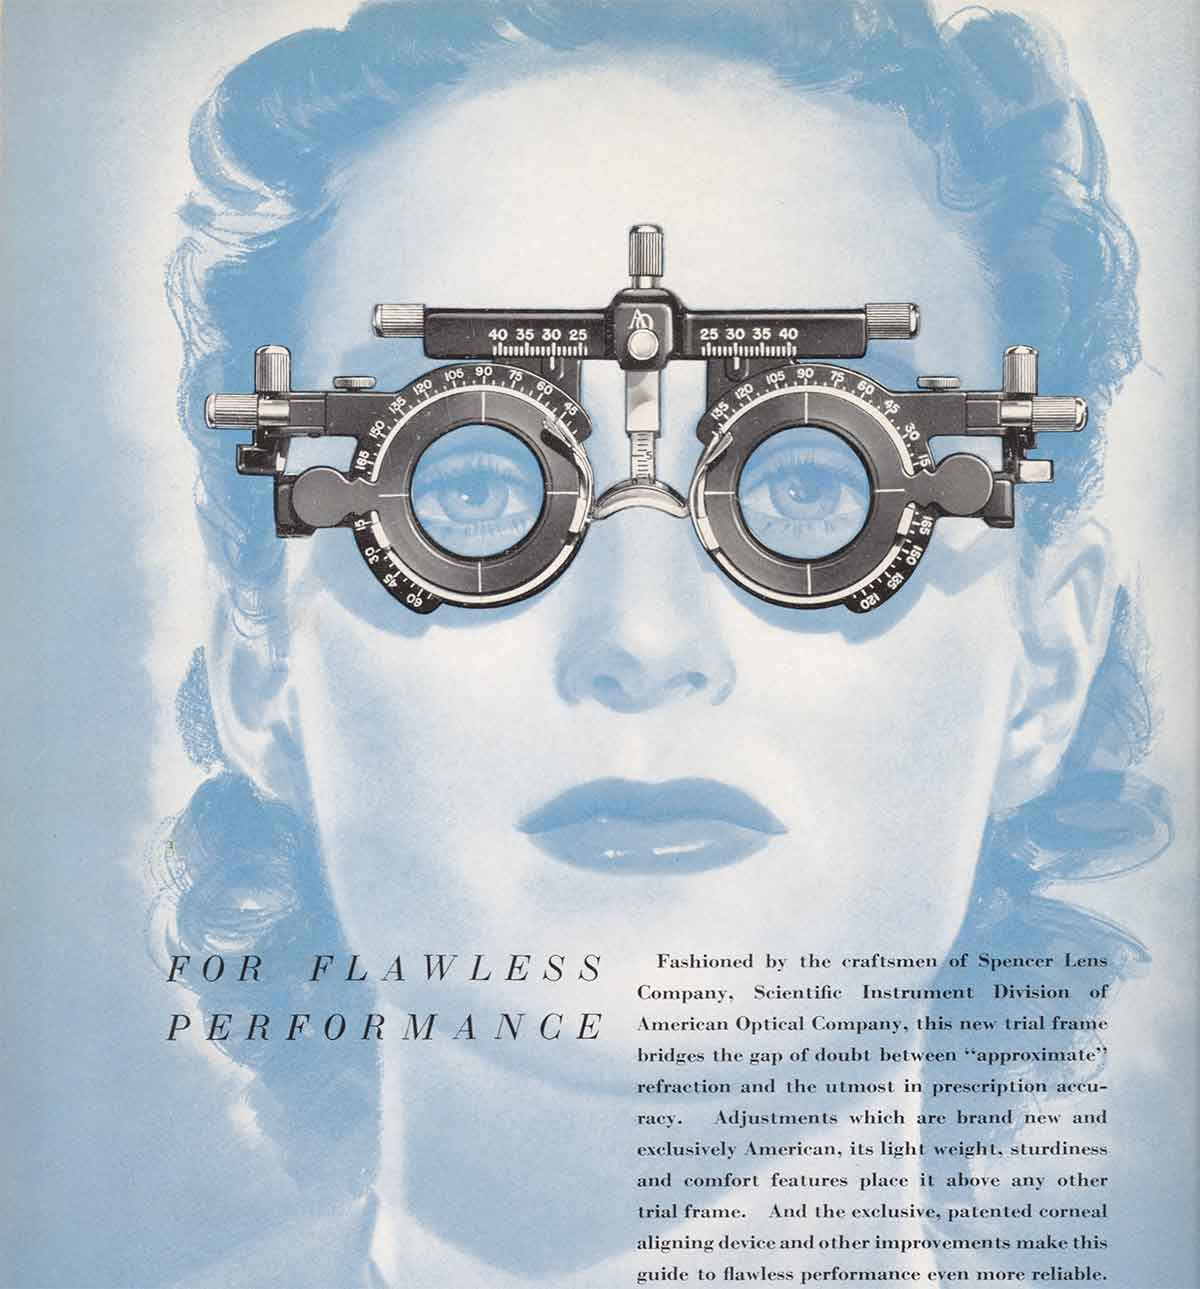 a4353652da1 Girls Who Wear Glasses - 1940s Beauty Tips